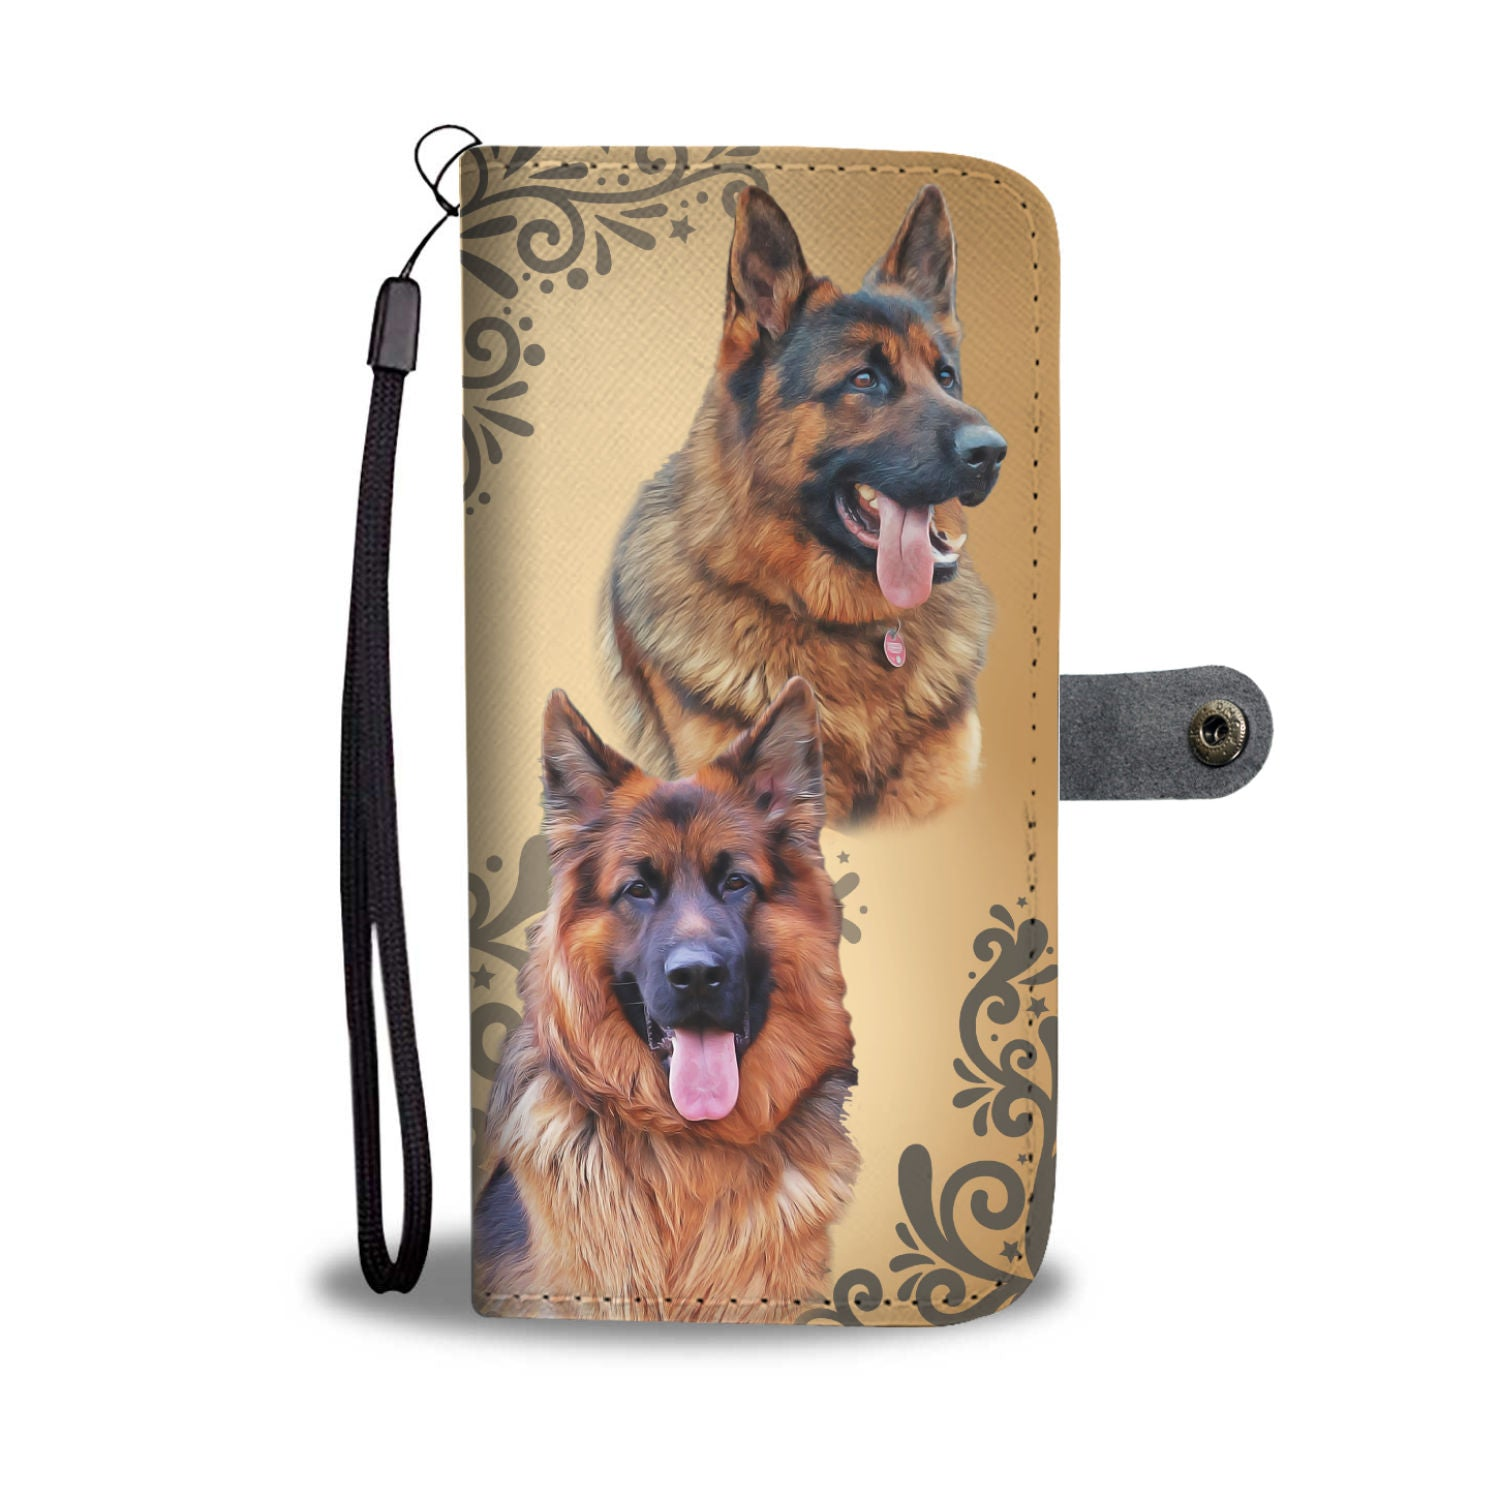 Hand-Crafted Custom-Designed Love German Shepherd Dog Wallet Phone Case